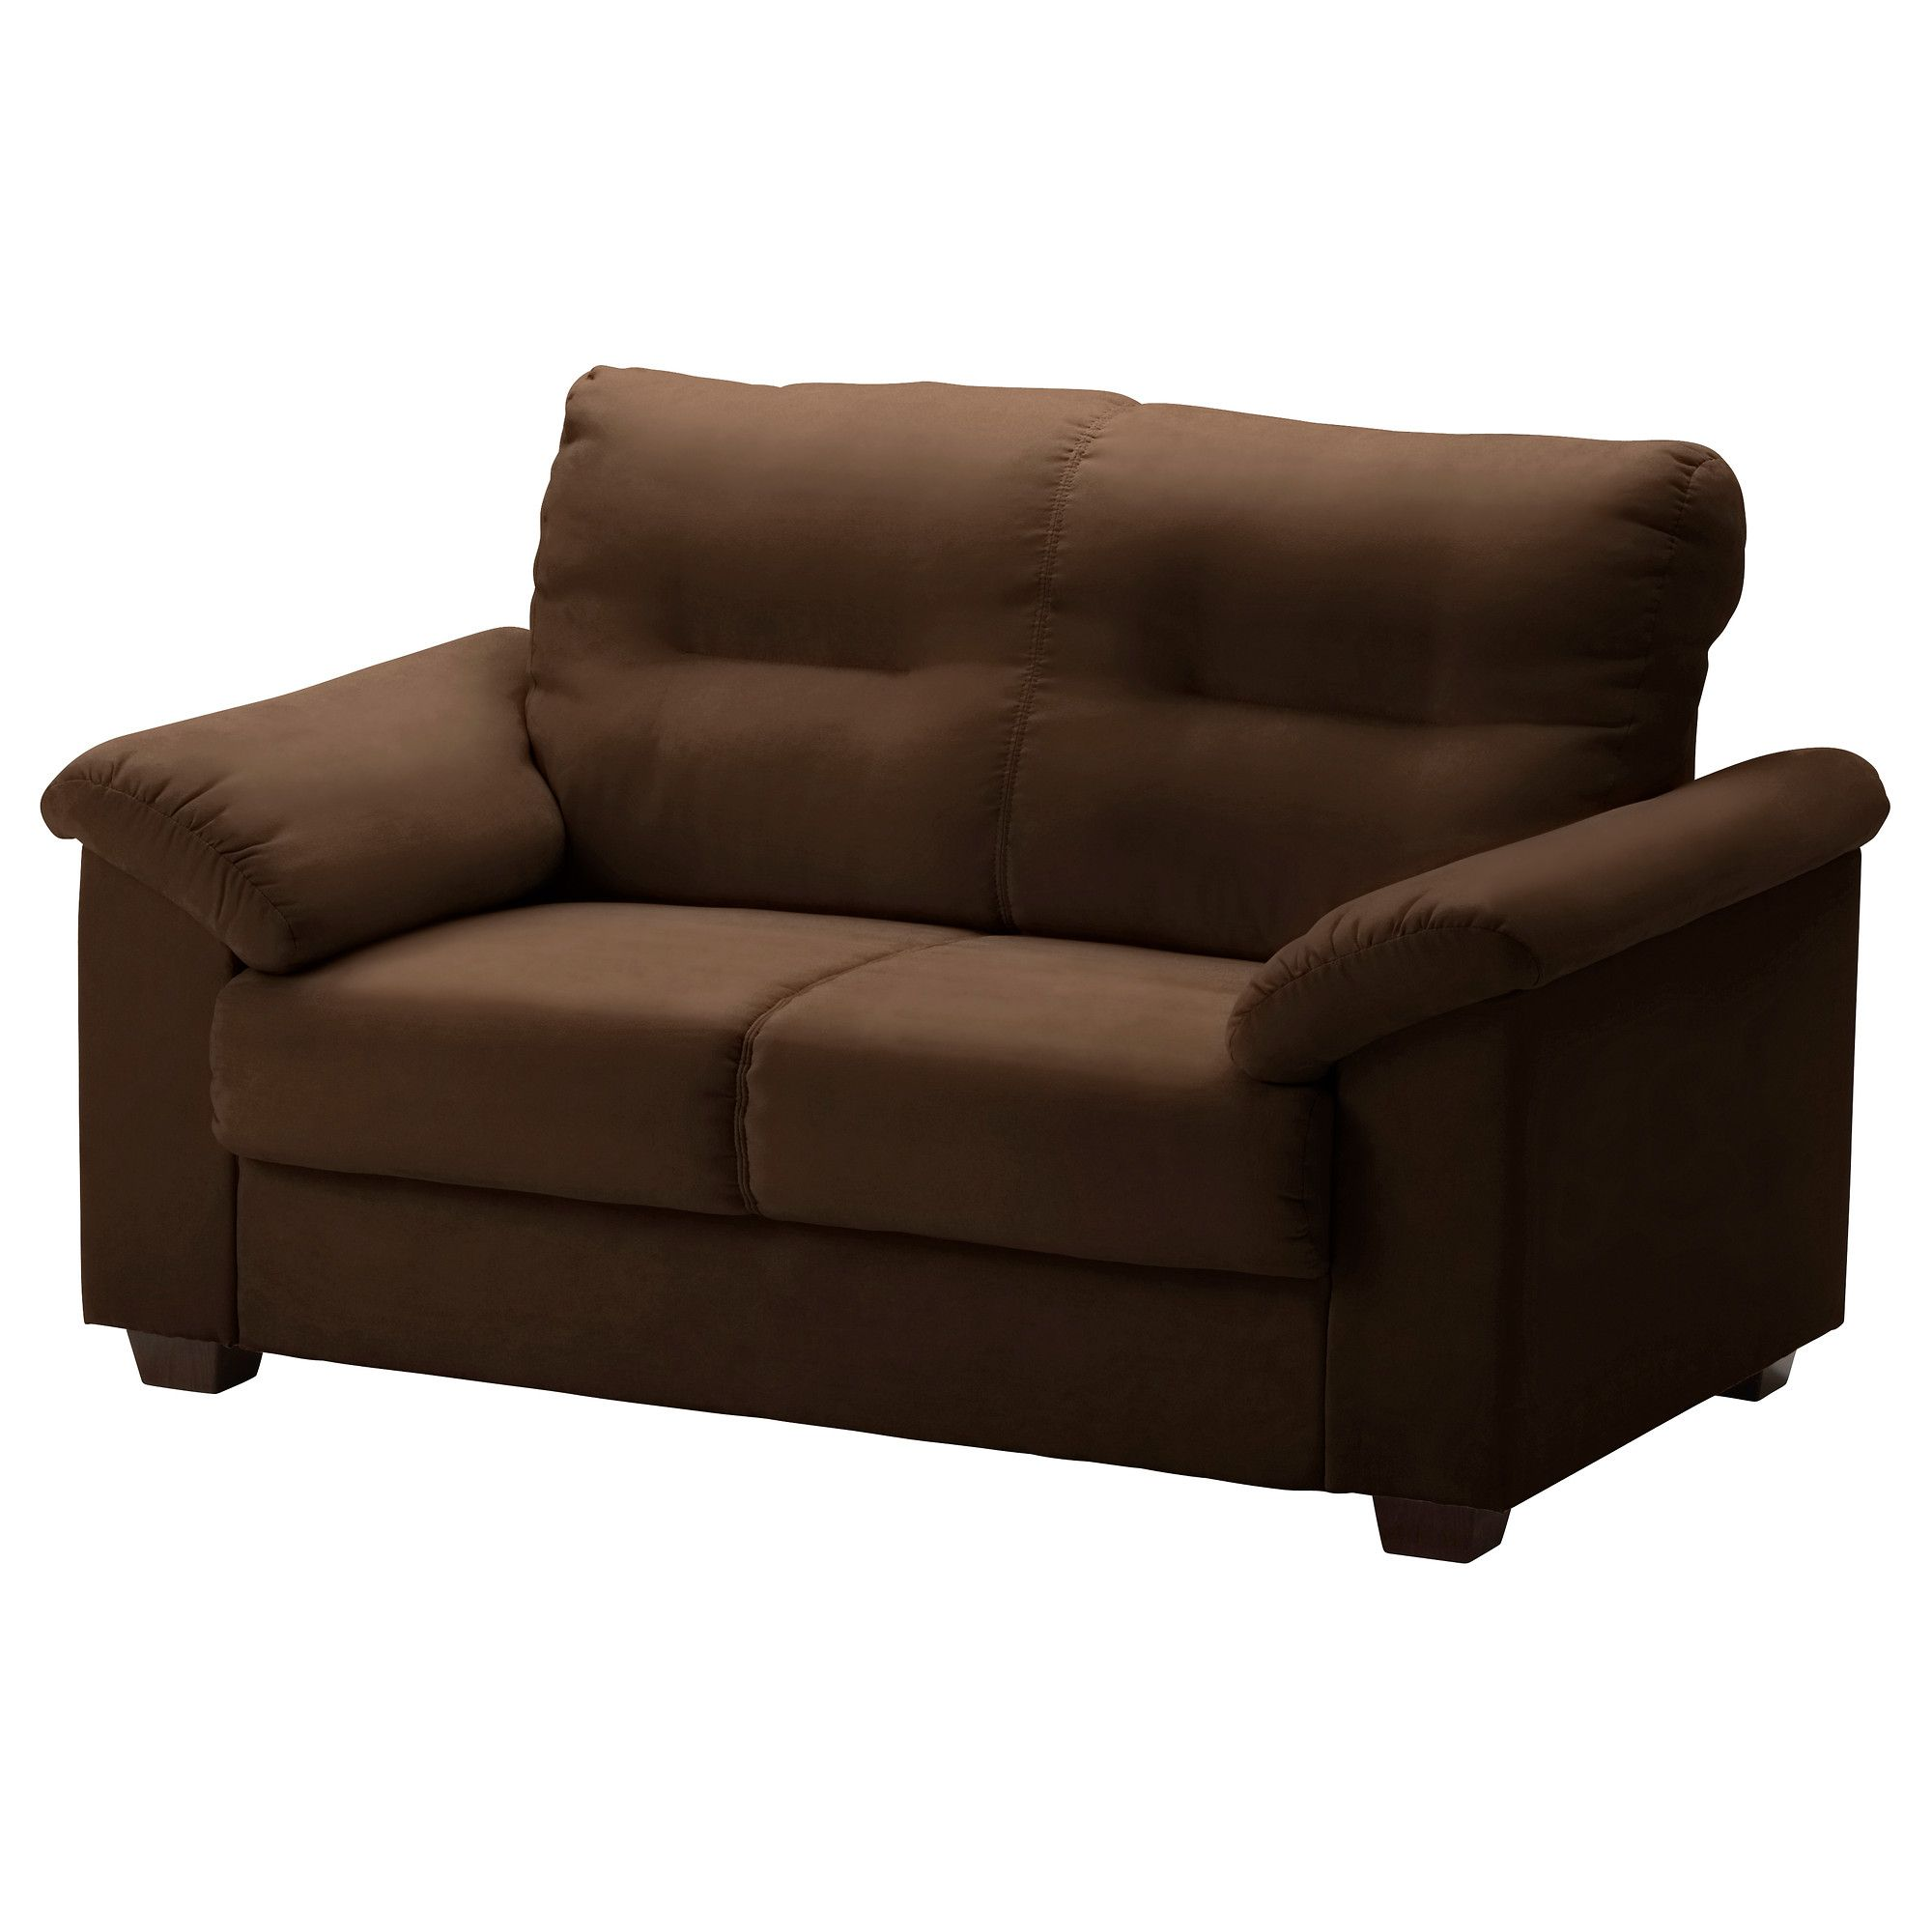 KNISLINGE Loveseat   Kungsvik Dark Brown   IKEA (put This In The Family  Room And